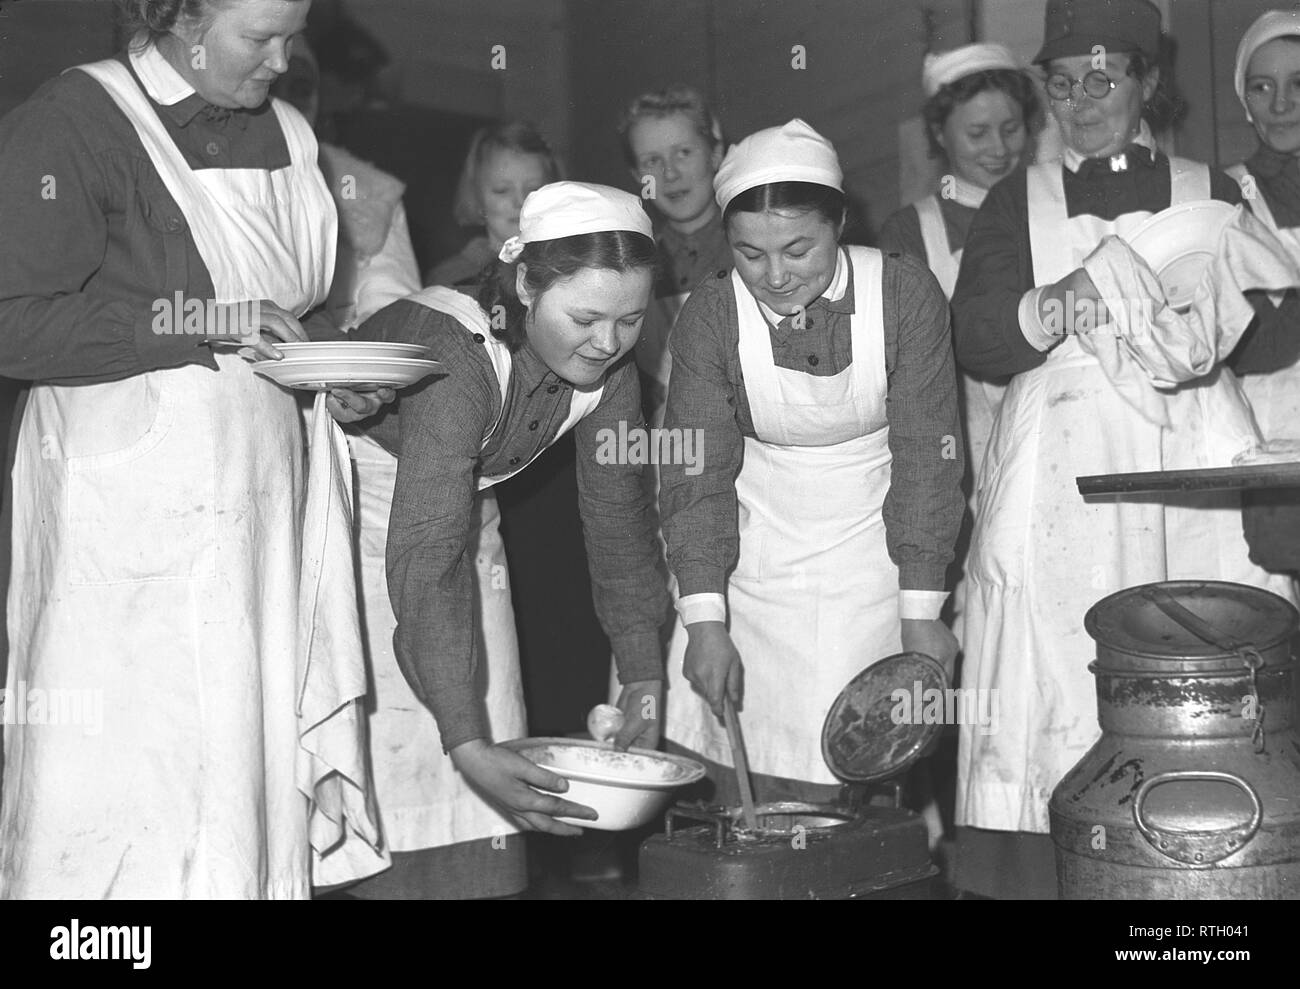 The Winter War. A military conflict between the Soviet union and Finland. It began with a Soviet invasion on november 1939 when Soviet infantery crossed the border on the Karelian Isthmus. About 9500 Swedish volunteer soldiers participated in the war. Pictured a group from the Finnish Women's Voluntary Service preparing food for the soldiers.  January 1940. Photo Kristoffersson ref 99-8. - Stock Image